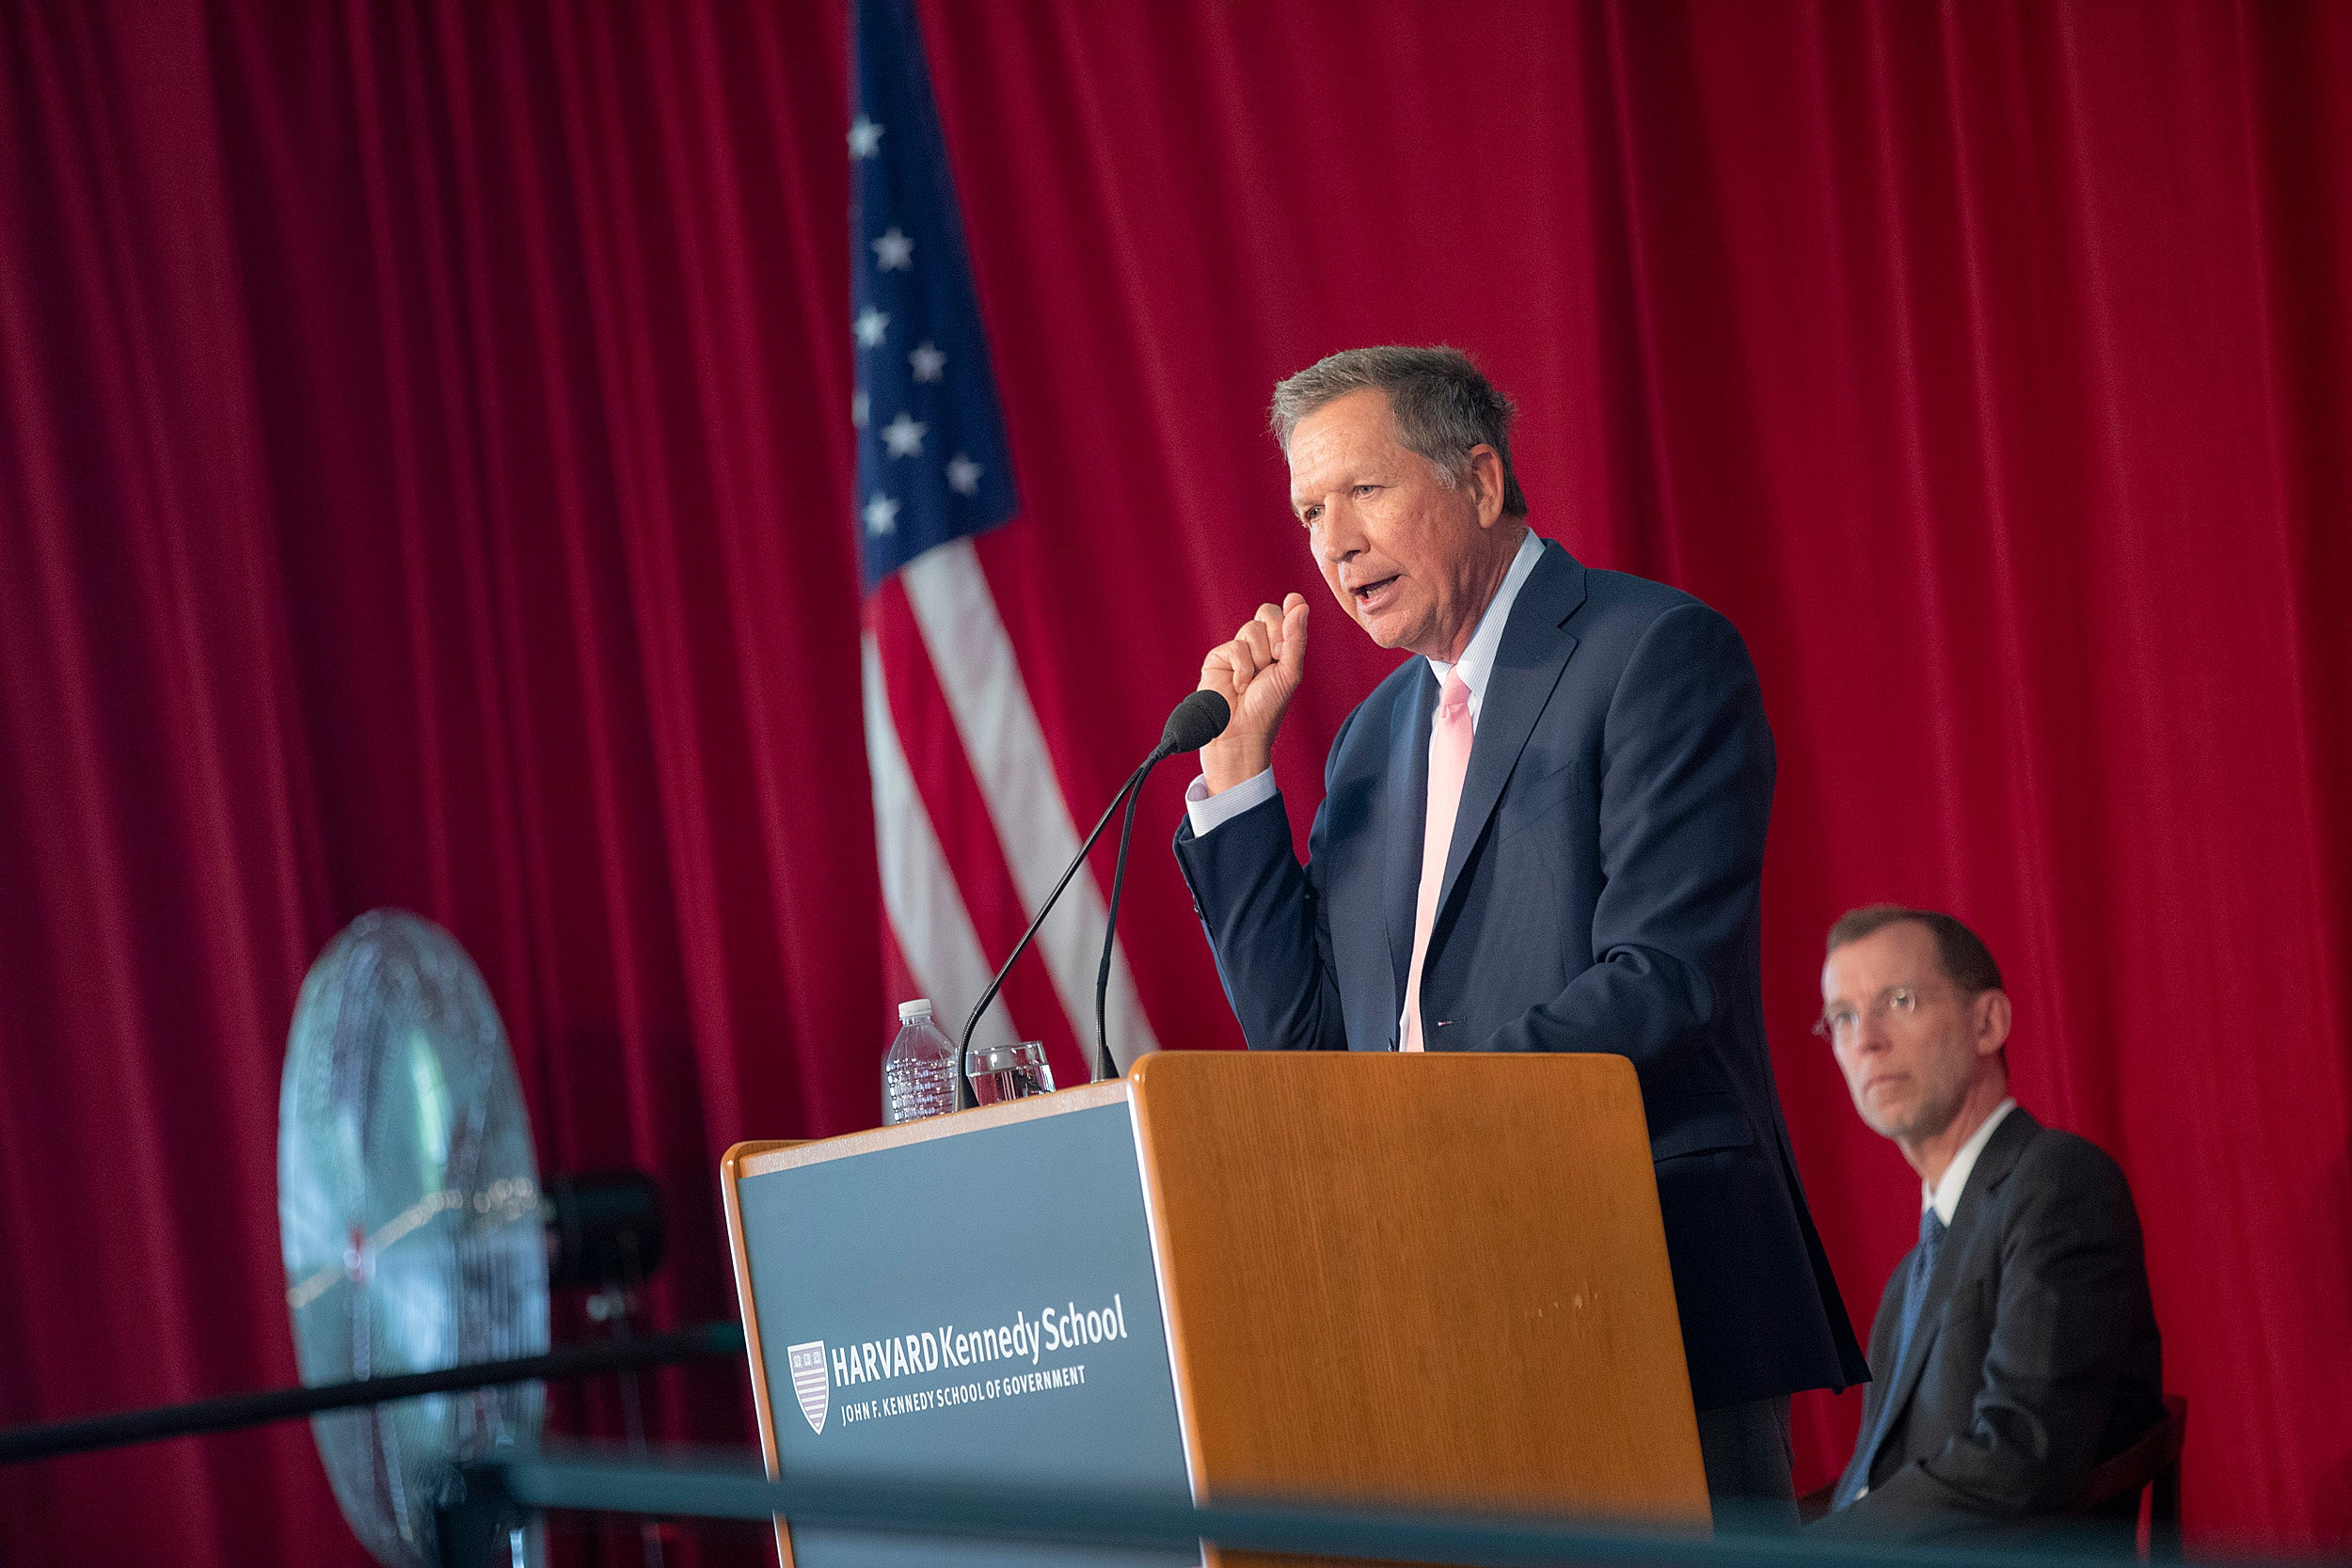 """[M]illennials are in search of more meaning, in trying to make a big difference in the way the world works,"" said Ohio Gov. John Kasich in his address to HKS graduates. ""You can change the way the world turns on its axis. You can, you will, and you must."""